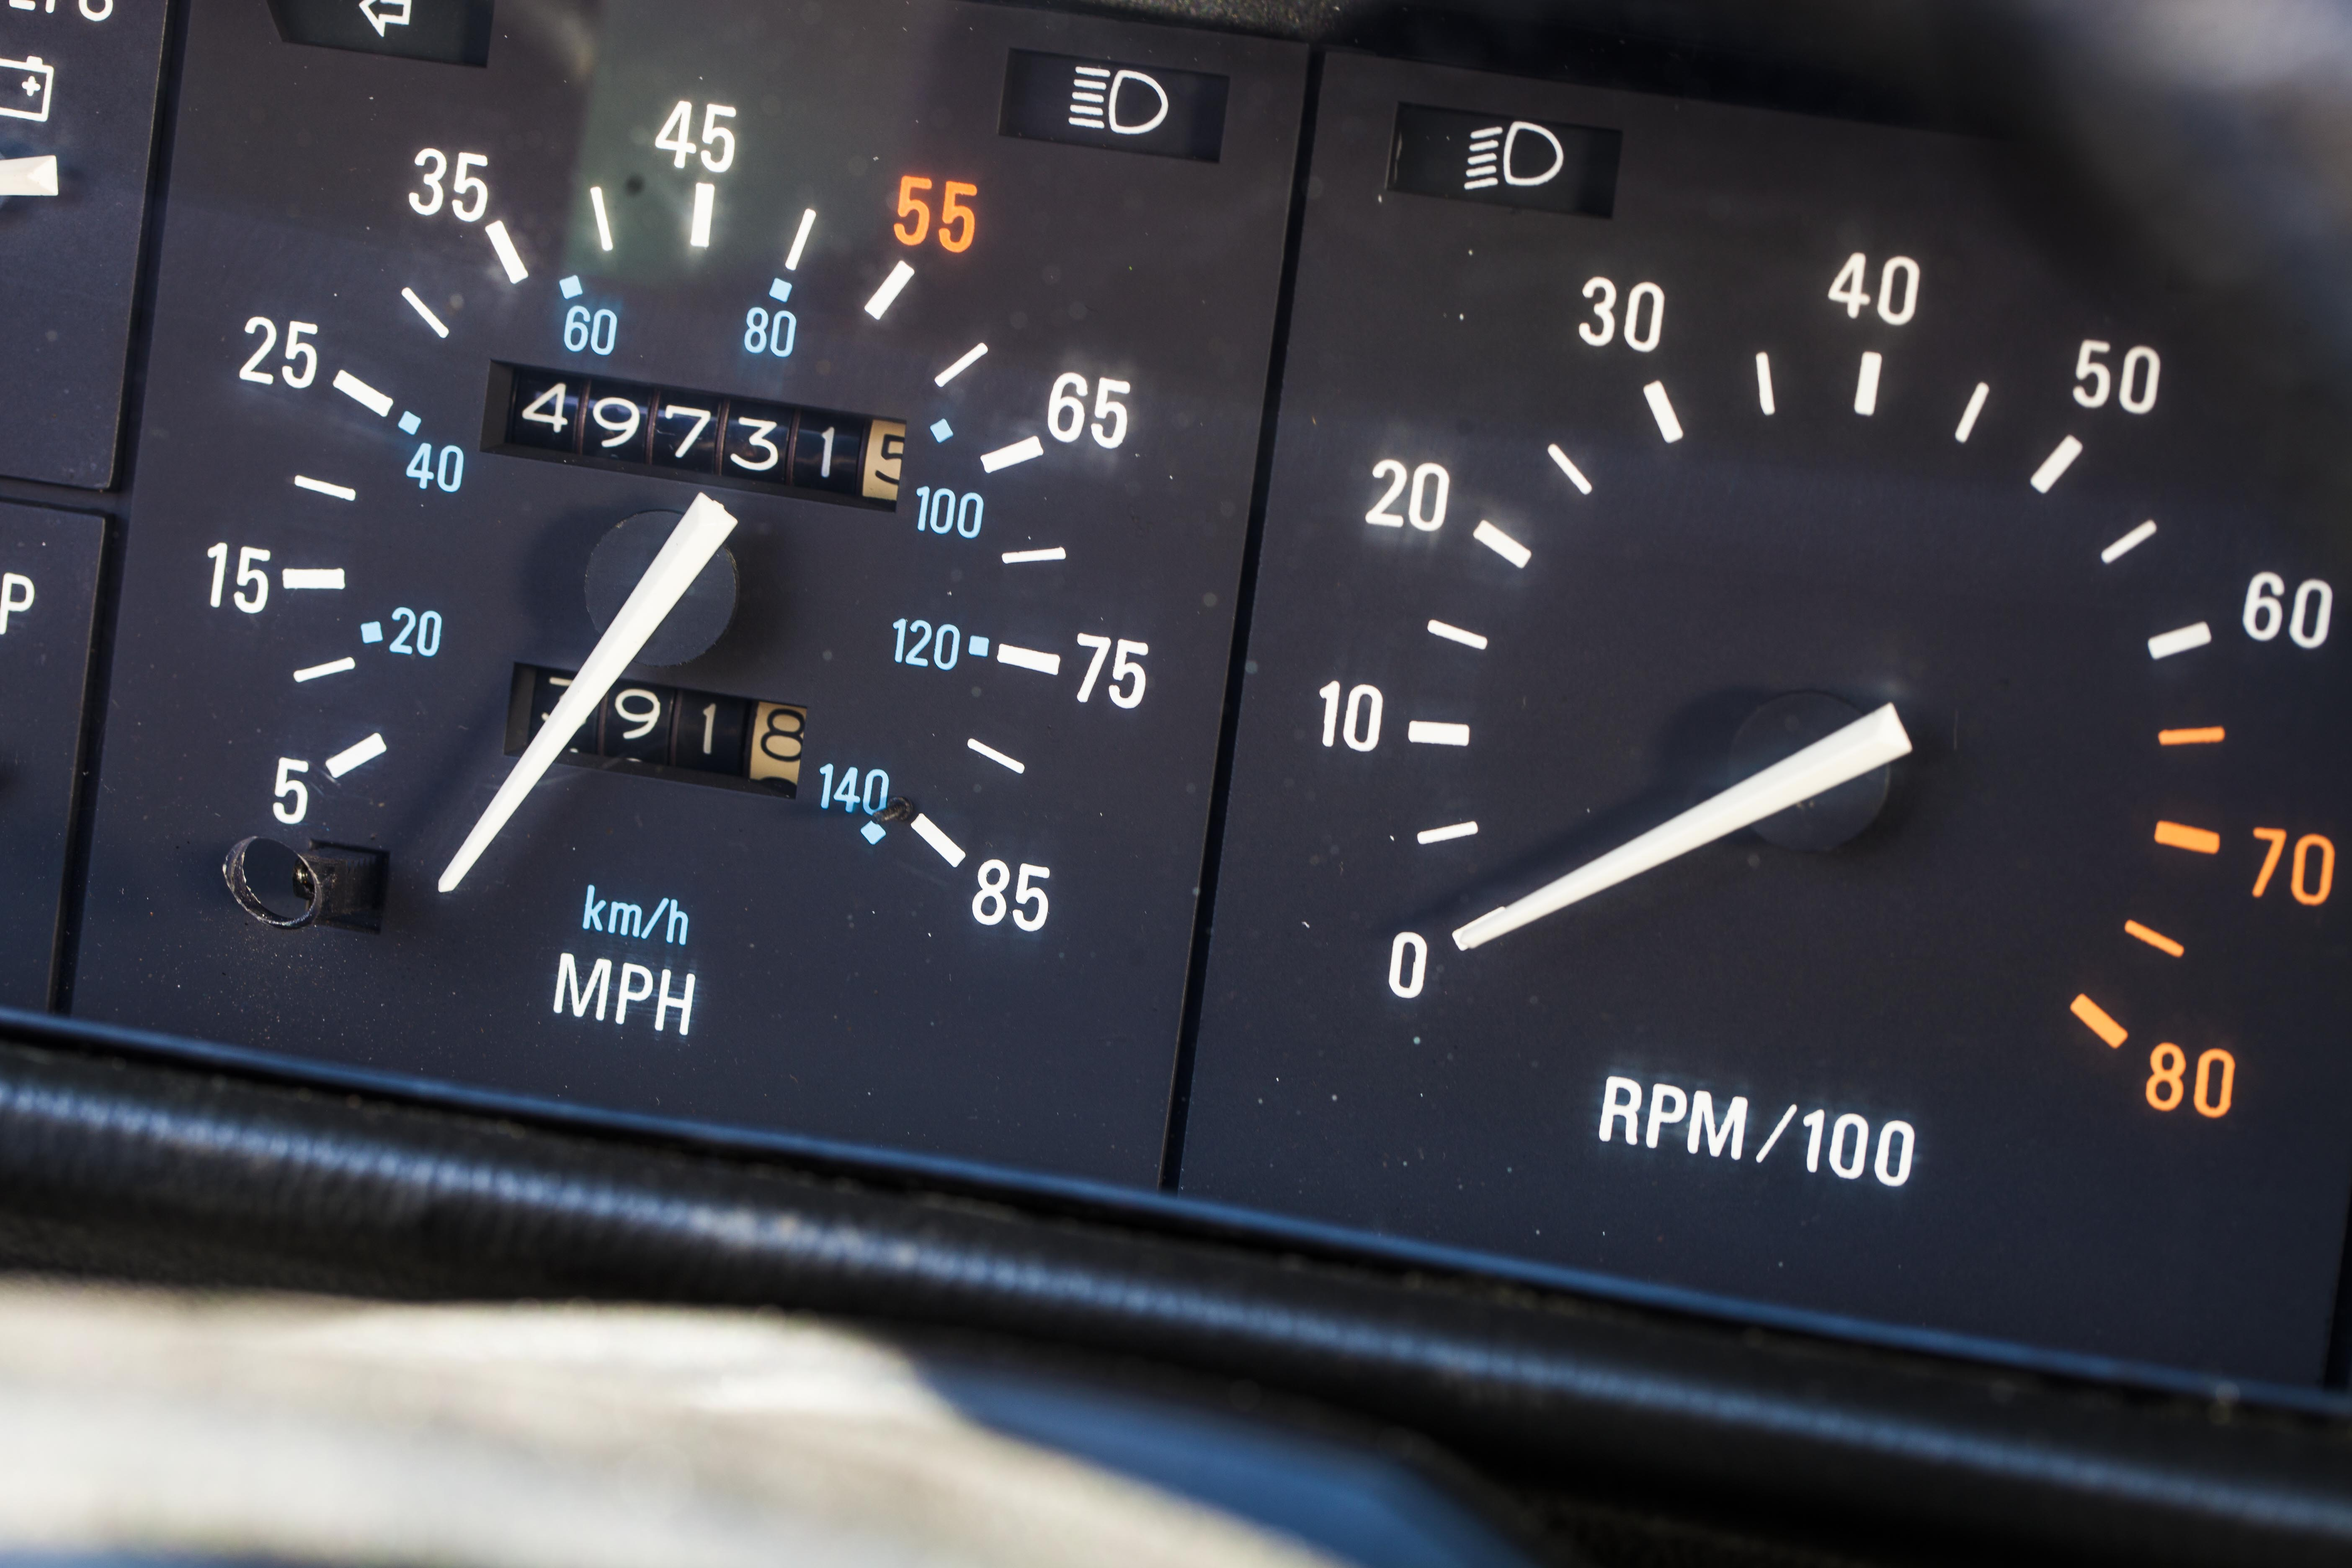 DeLorean DMC-12 dashboard